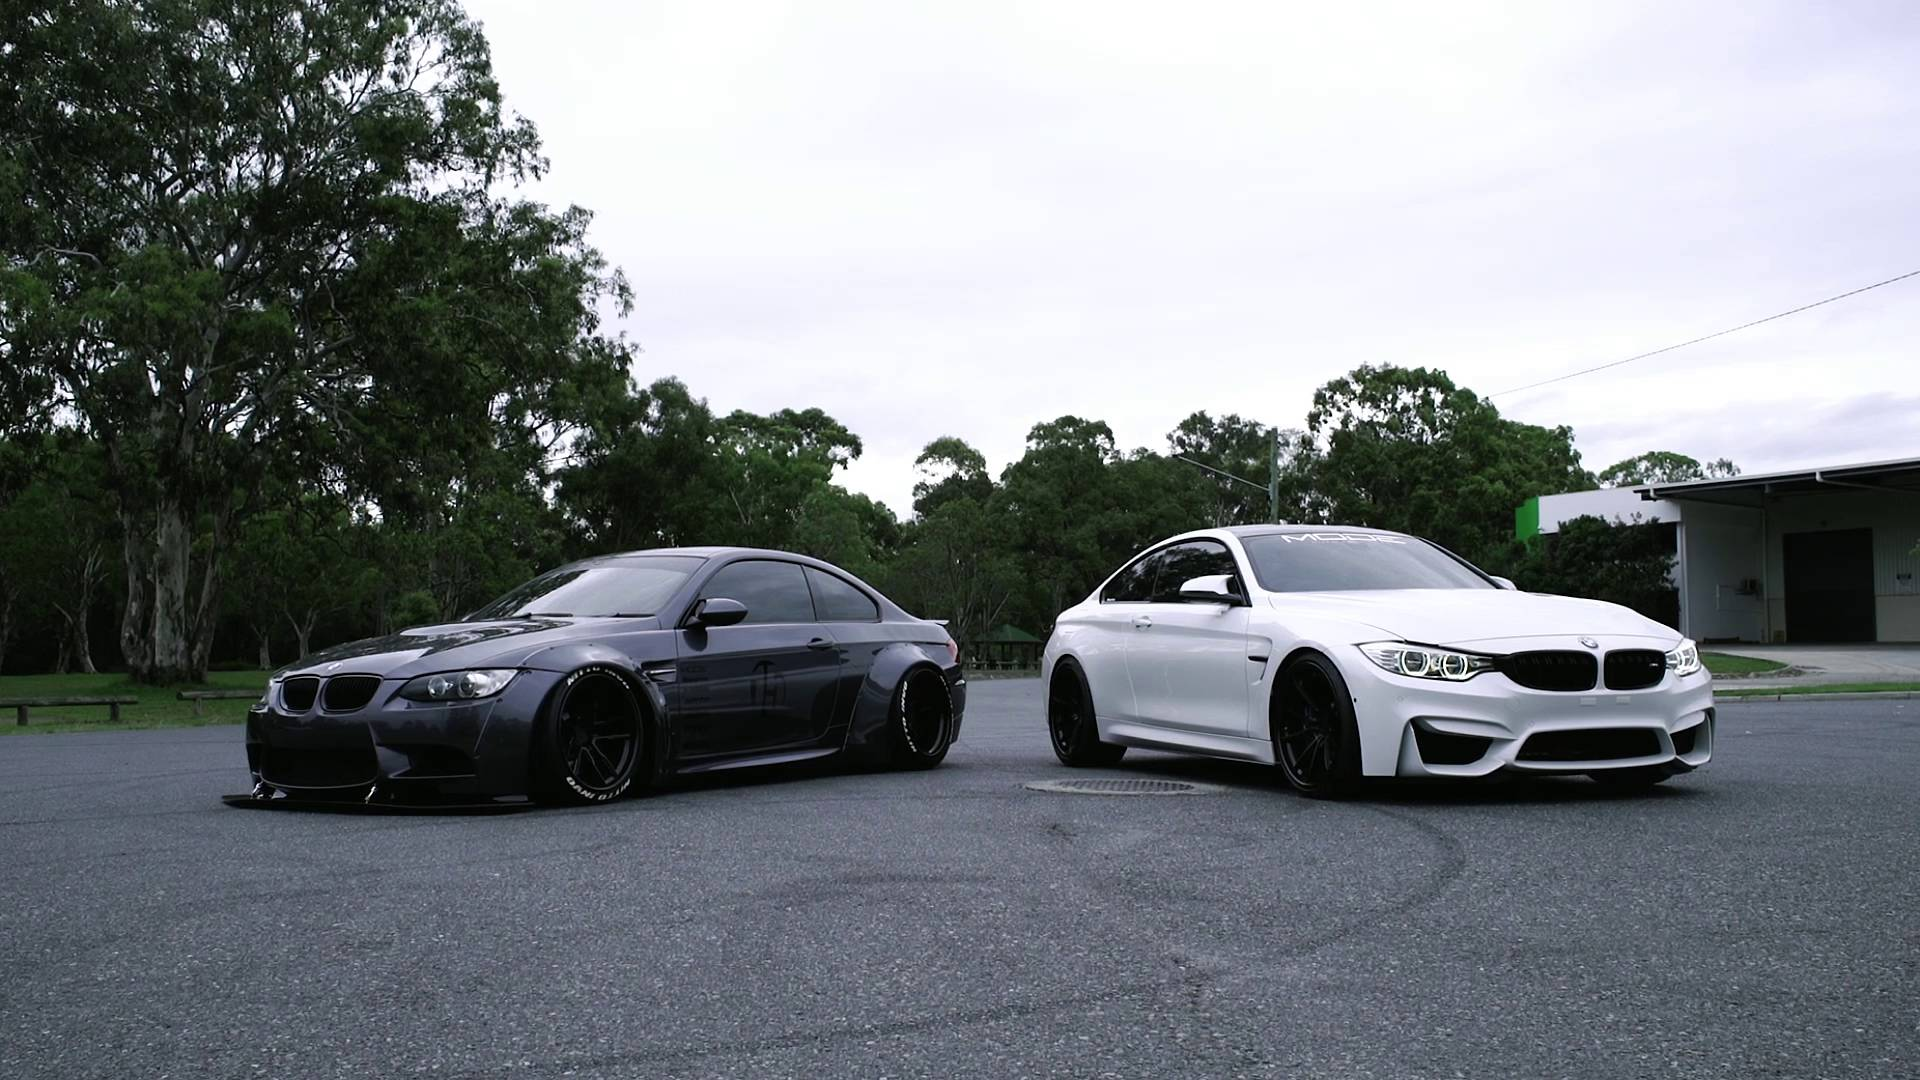 insane rev battle bmw e92 m3 vs bmw f82 m4. Black Bedroom Furniture Sets. Home Design Ideas